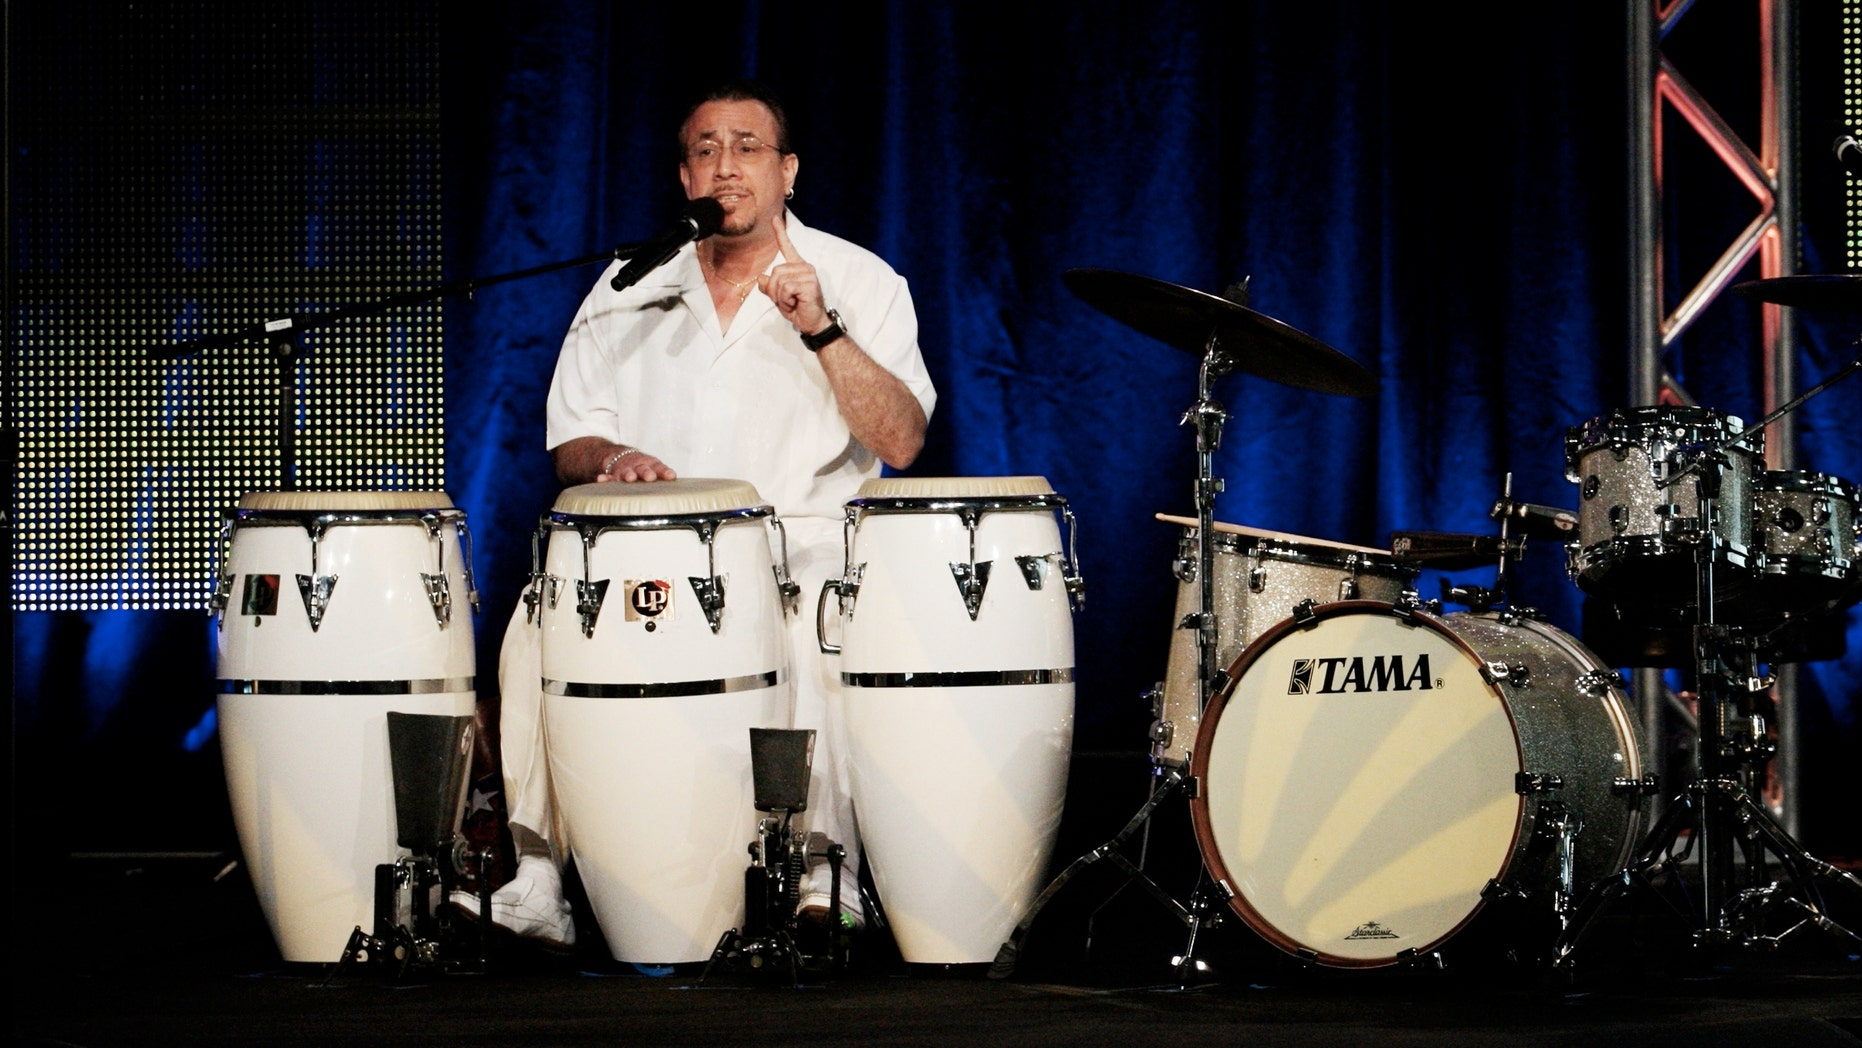 Percussionist Bobby Sanabria from the program 'Latin Music USA' speaks during the PBS portion of the 2009 Summer Television Critics Association Press Tour at the Ritz-Carlton Huntington Hotel on August 2, 2009 in Pasadena, California. (Photo by Frederick M. Brown/Getty Images)